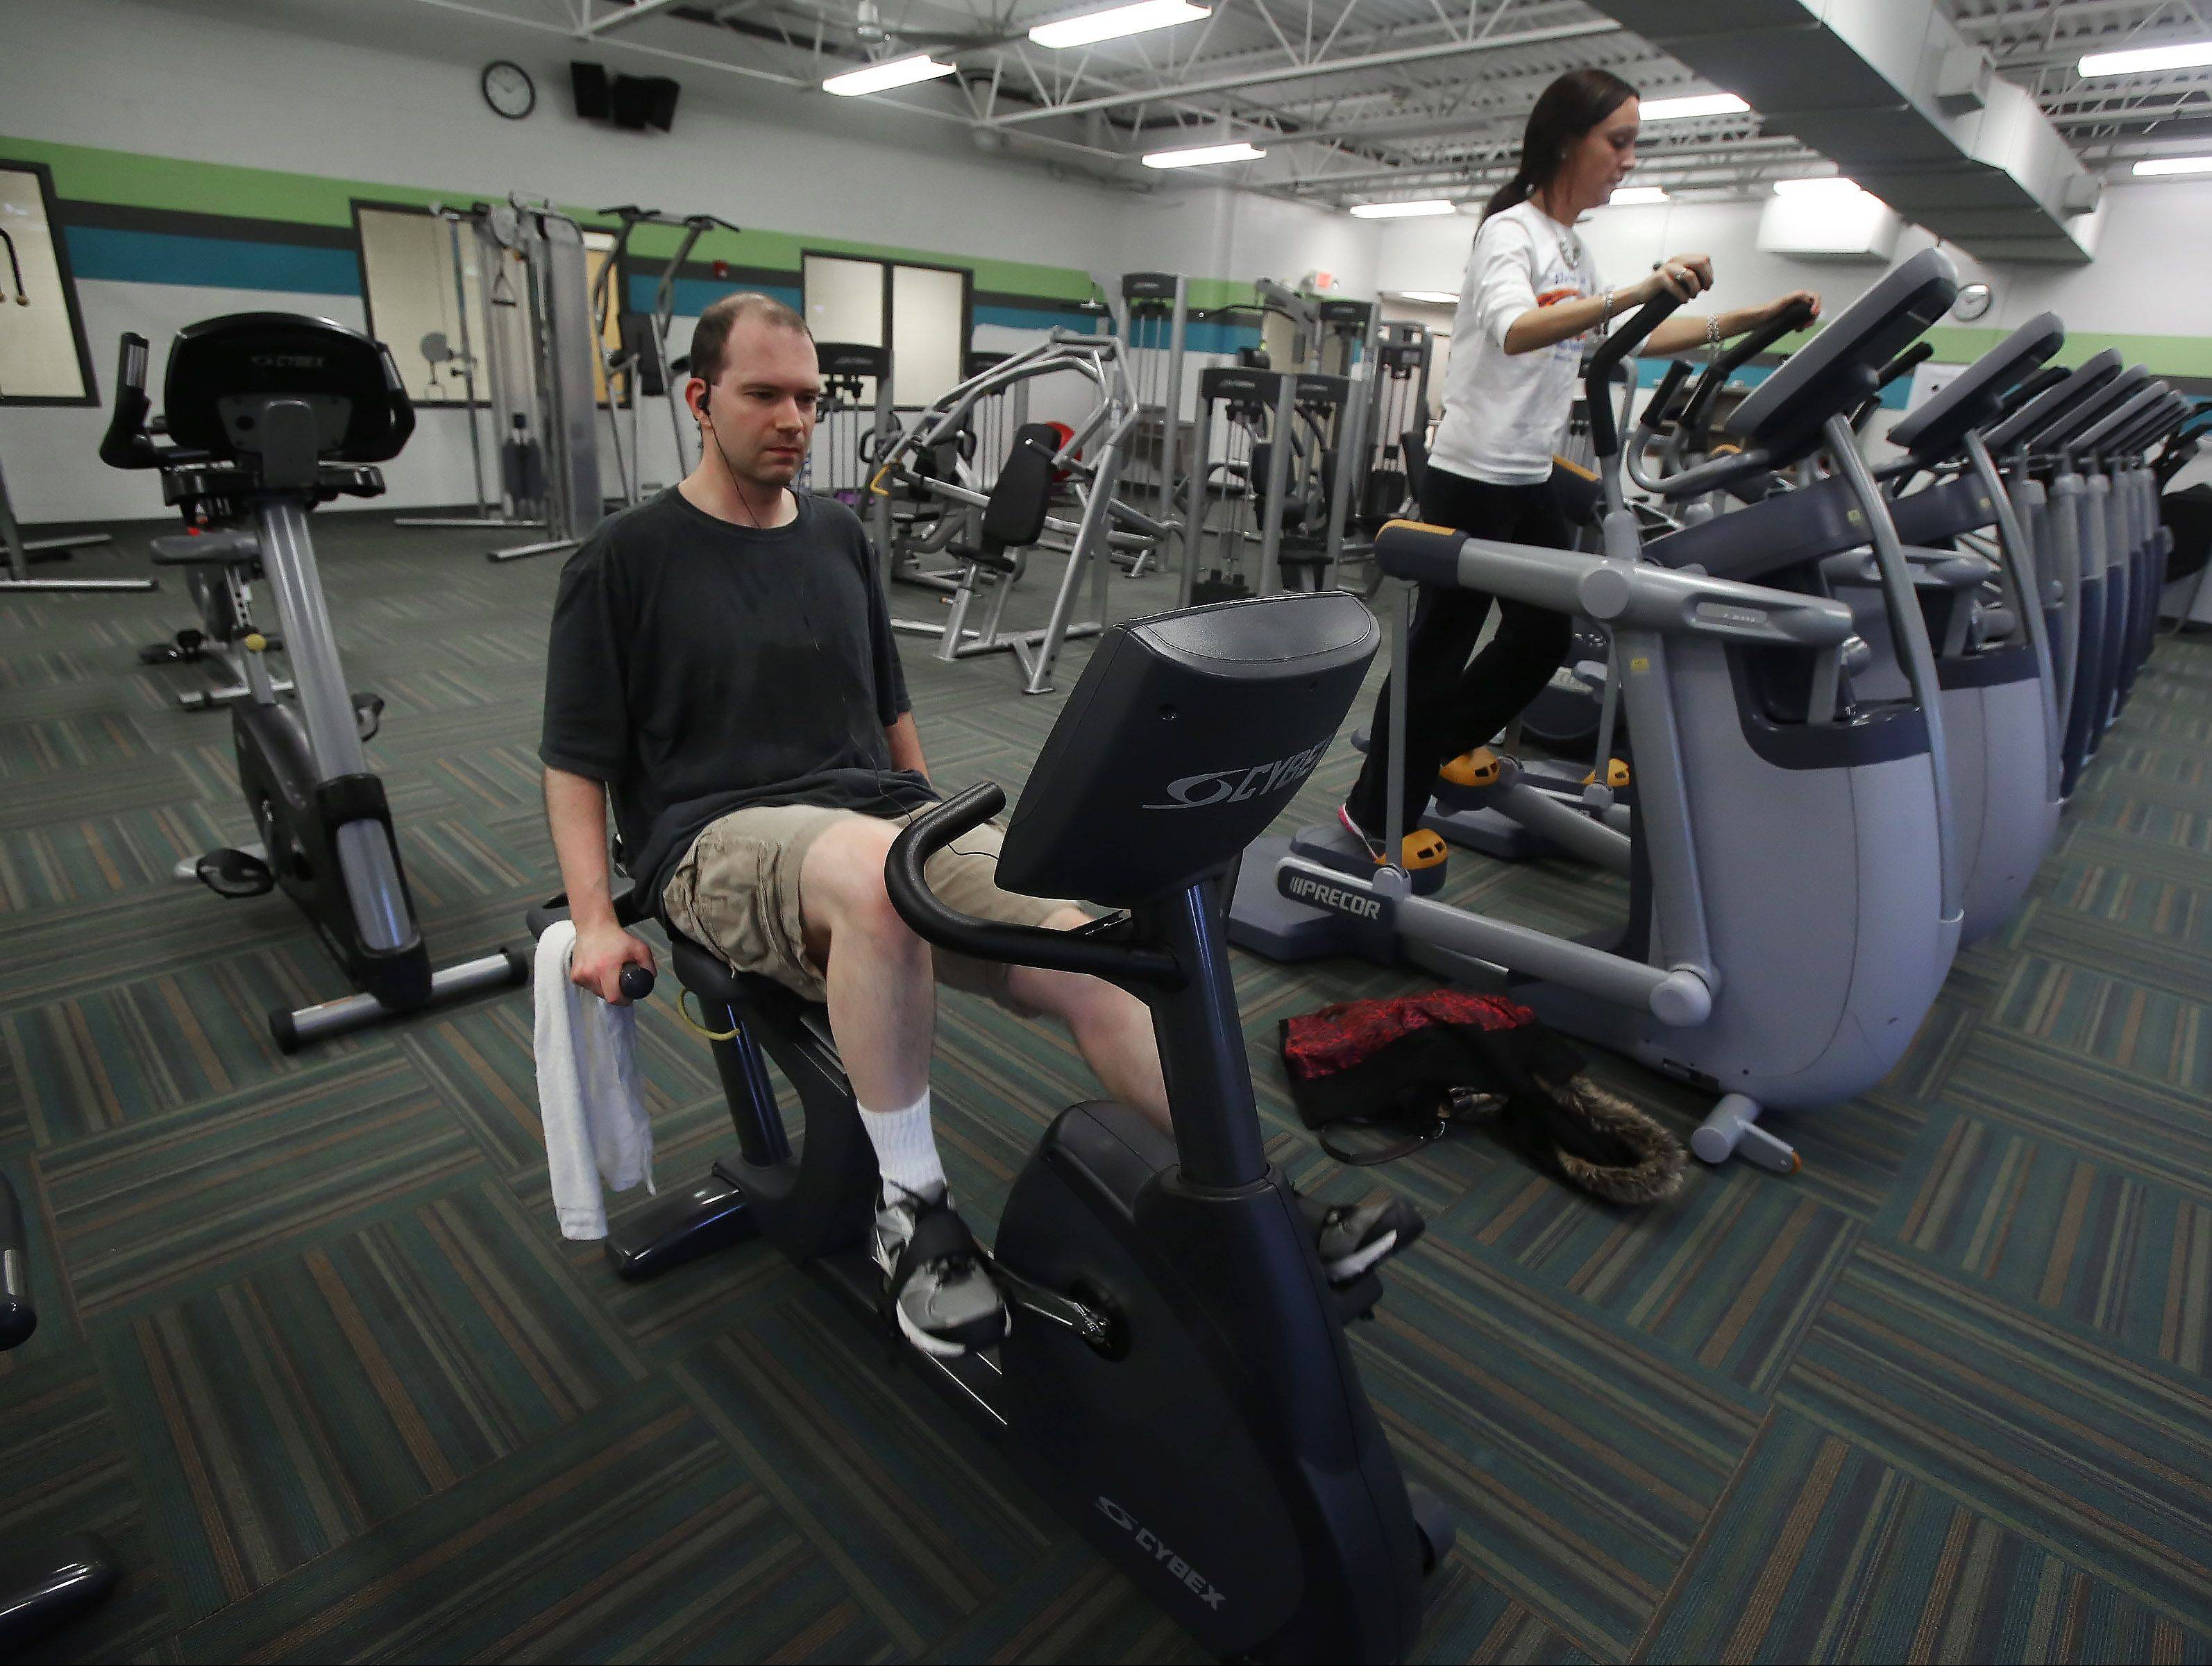 Todd Miller of Vernon Hills and Lindsay Carty of Libertyville workout at Lakeview Fitness Center in Vernon Hills. The Vernon Hills Park District bought the former Central Lake YMCA facility and property for about $2 million and took over operations at the beginning of the year.